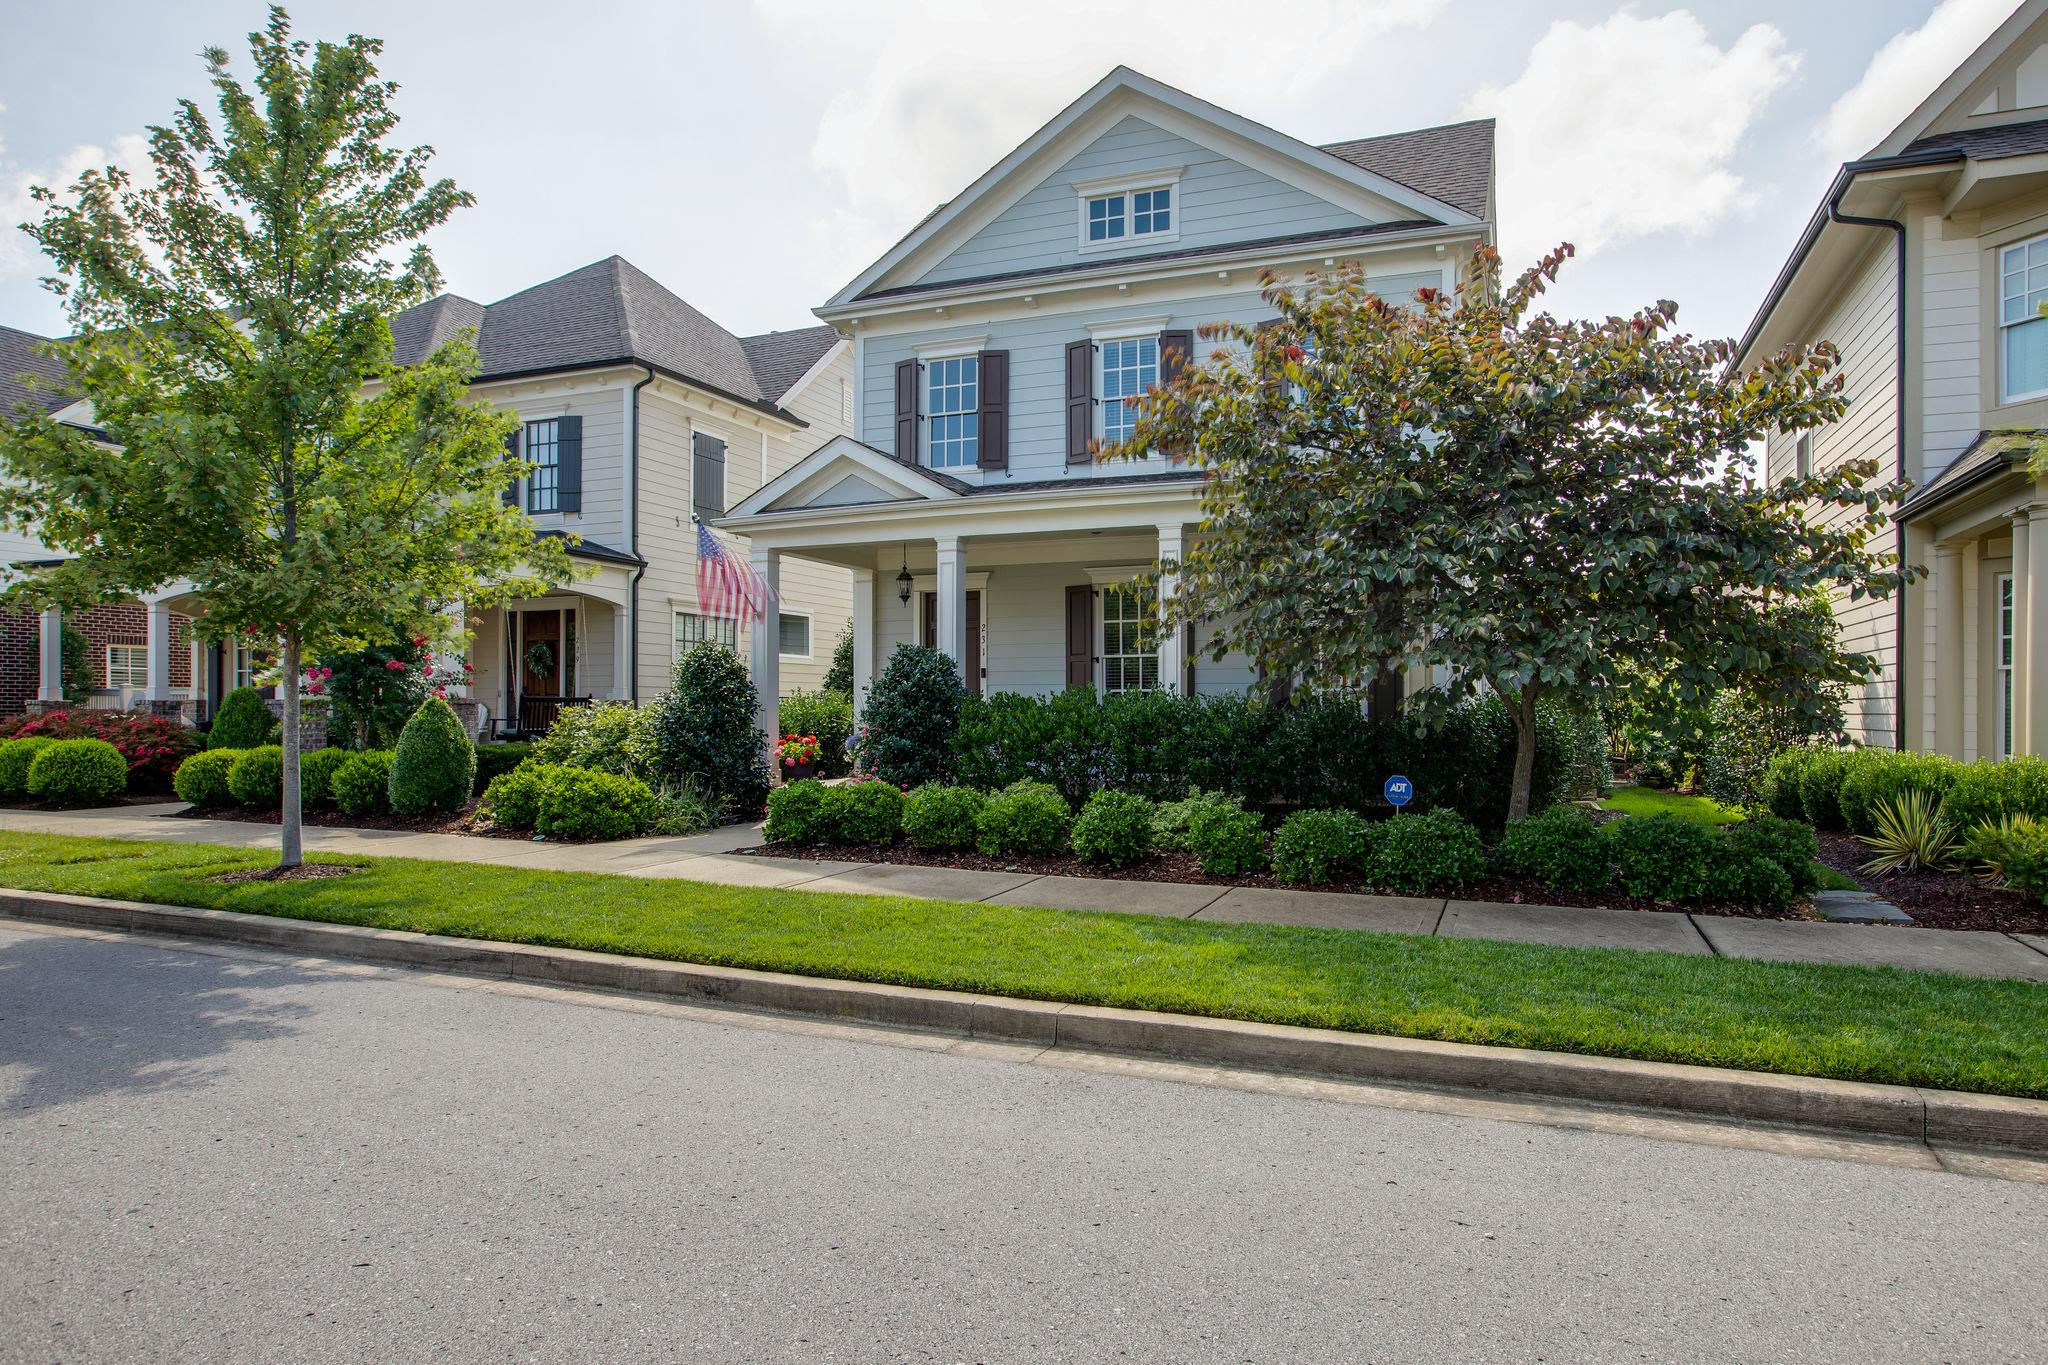 231 Fitzgerald St, Franklin, TN 37064 - Franklin, TN real estate listing